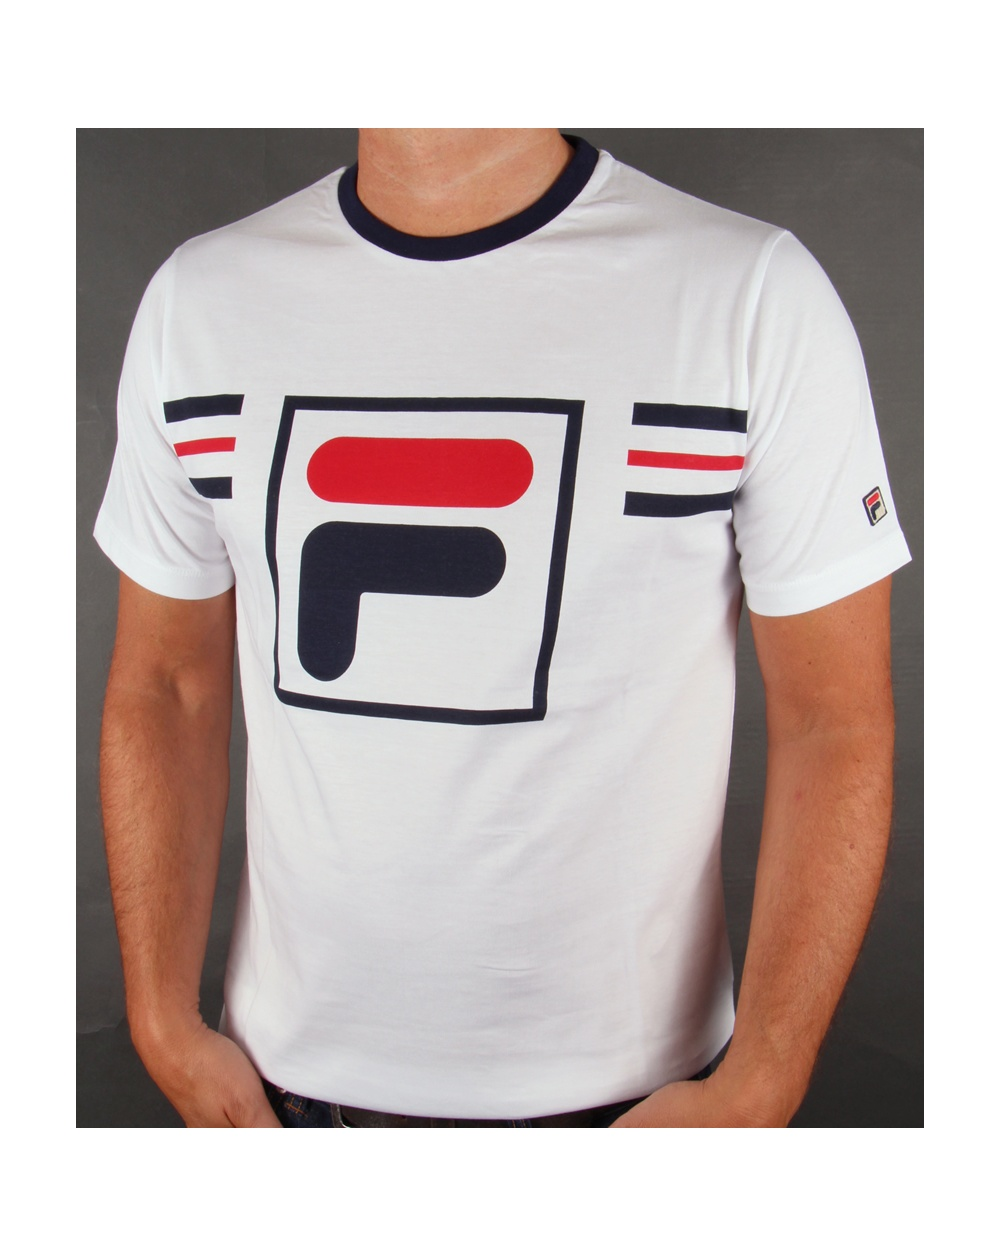 c3c9090081d4 Fila Vintage Gimondo T-shirt White navy red - crew neck logo tee